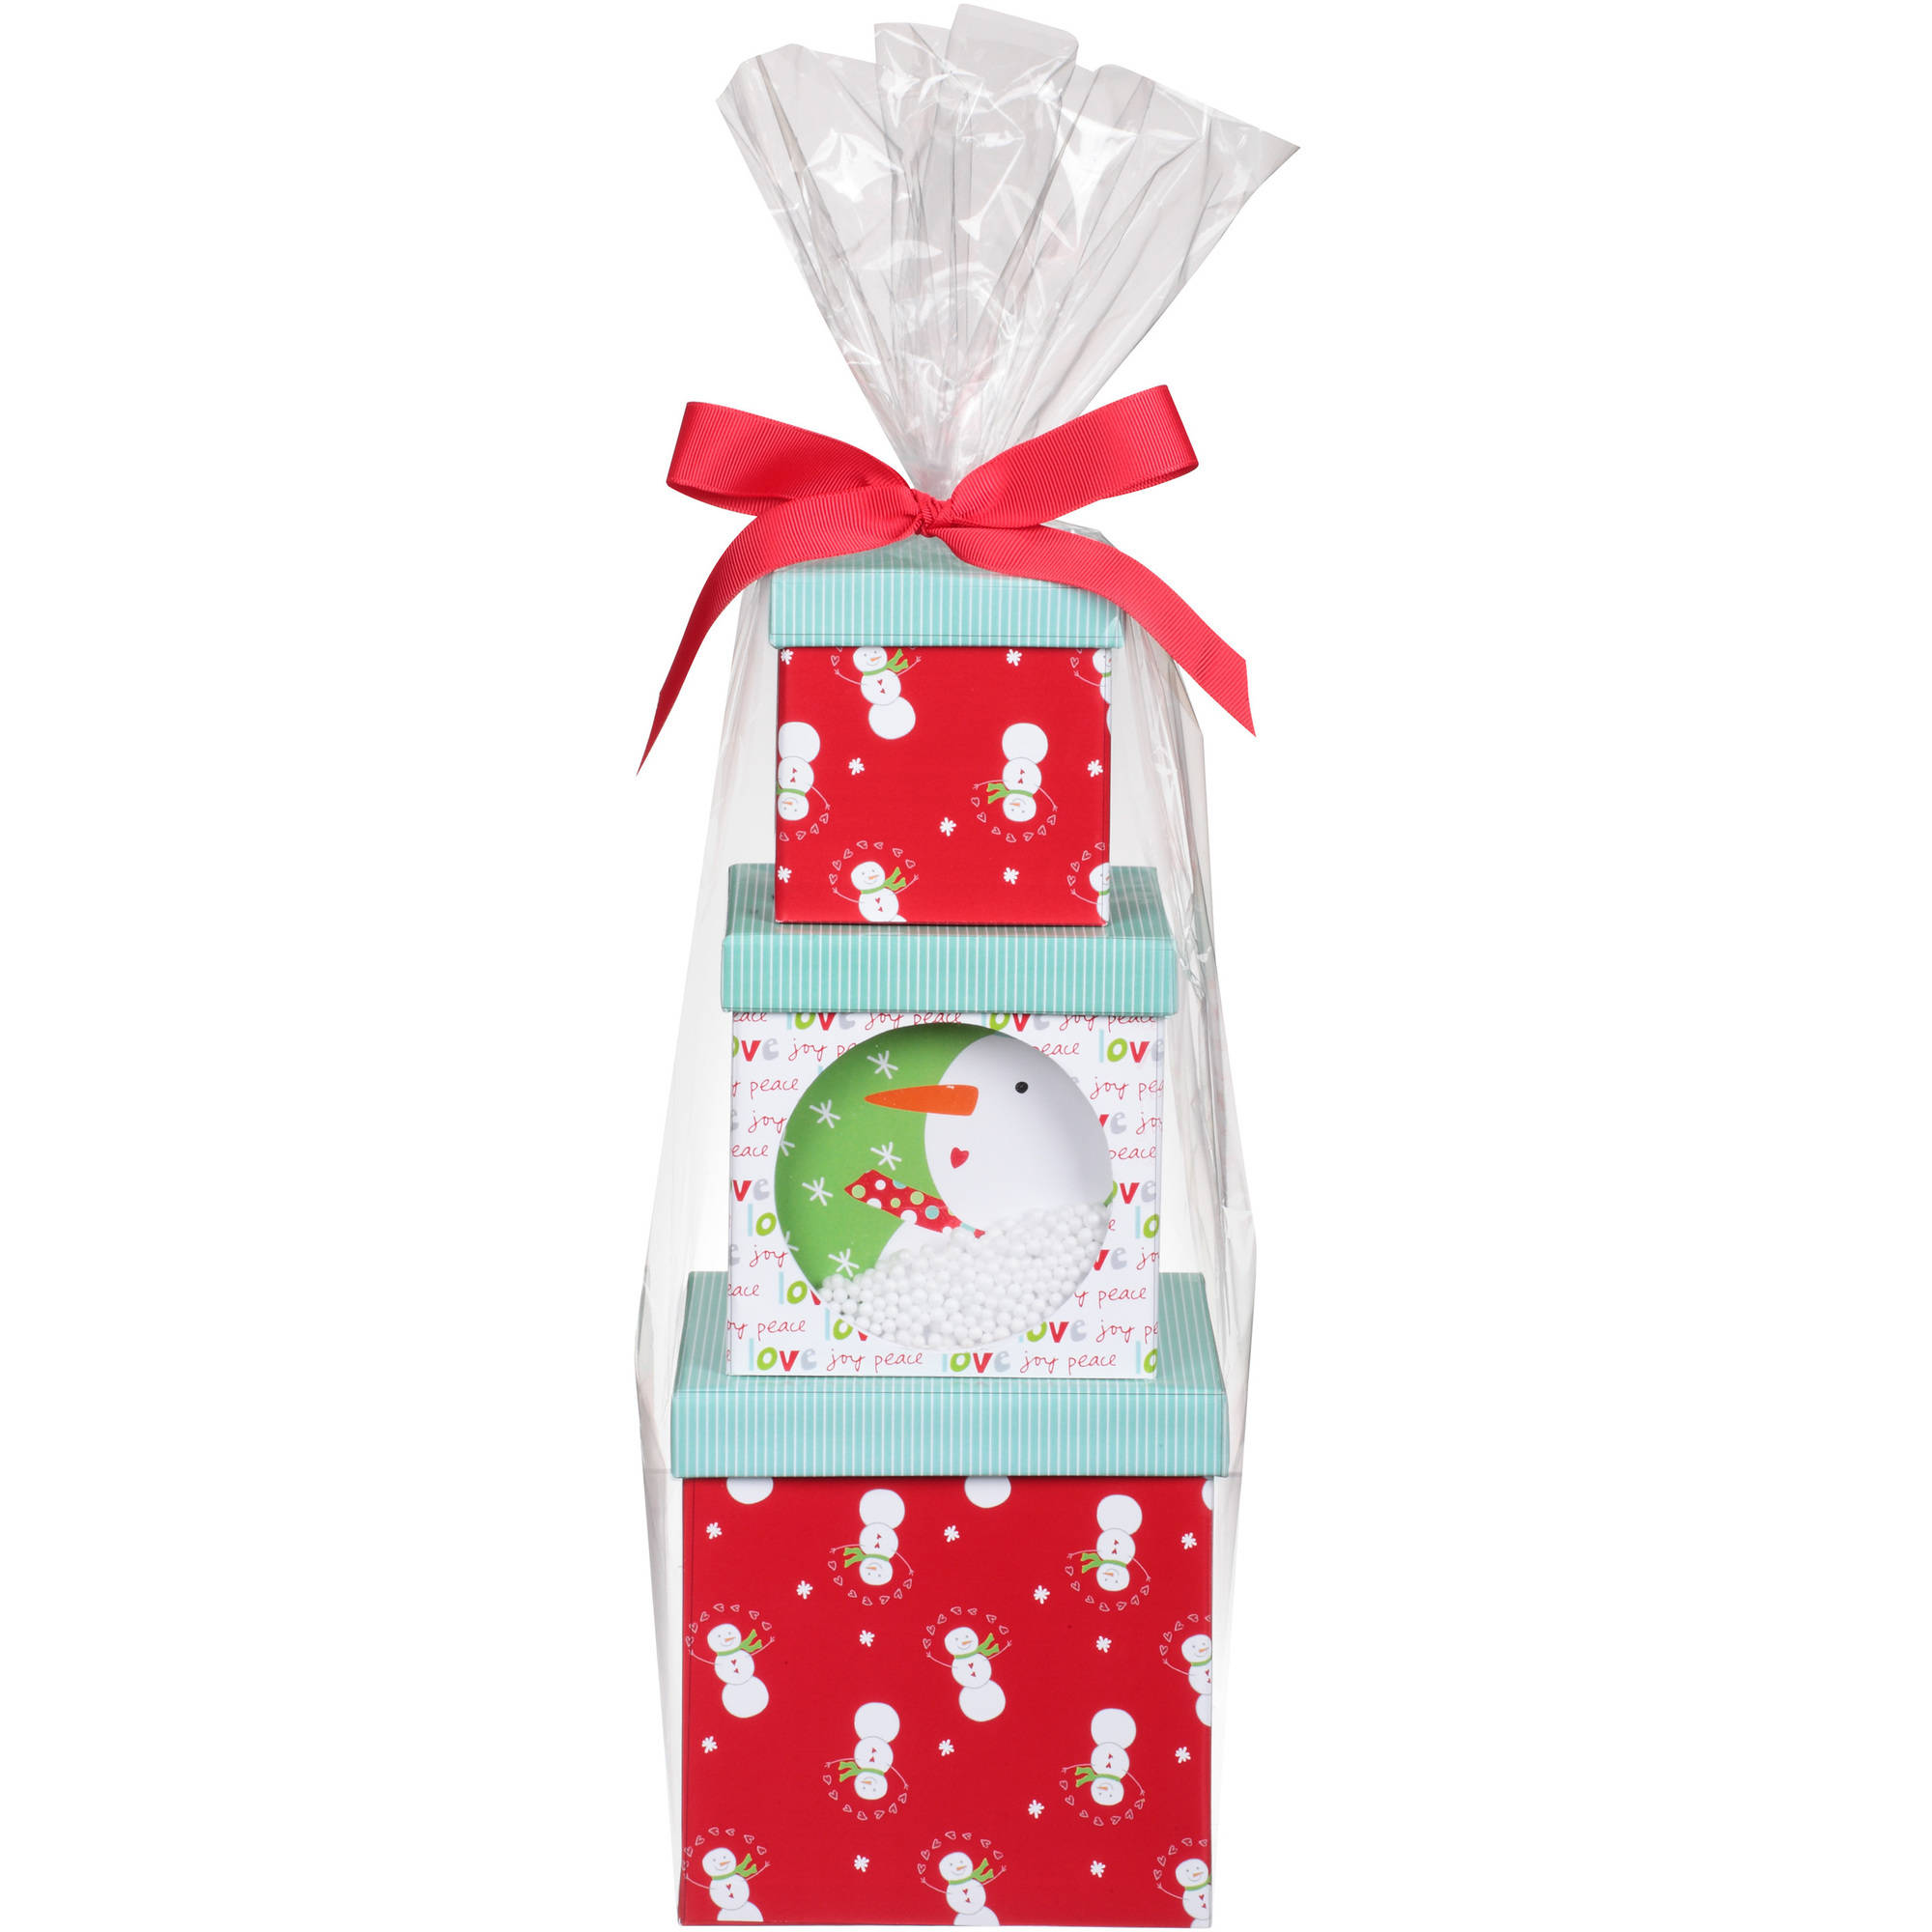 Sandra Magsamen Snow Much Tower Candy and Cookie Holiday Gift Set, 10 pc